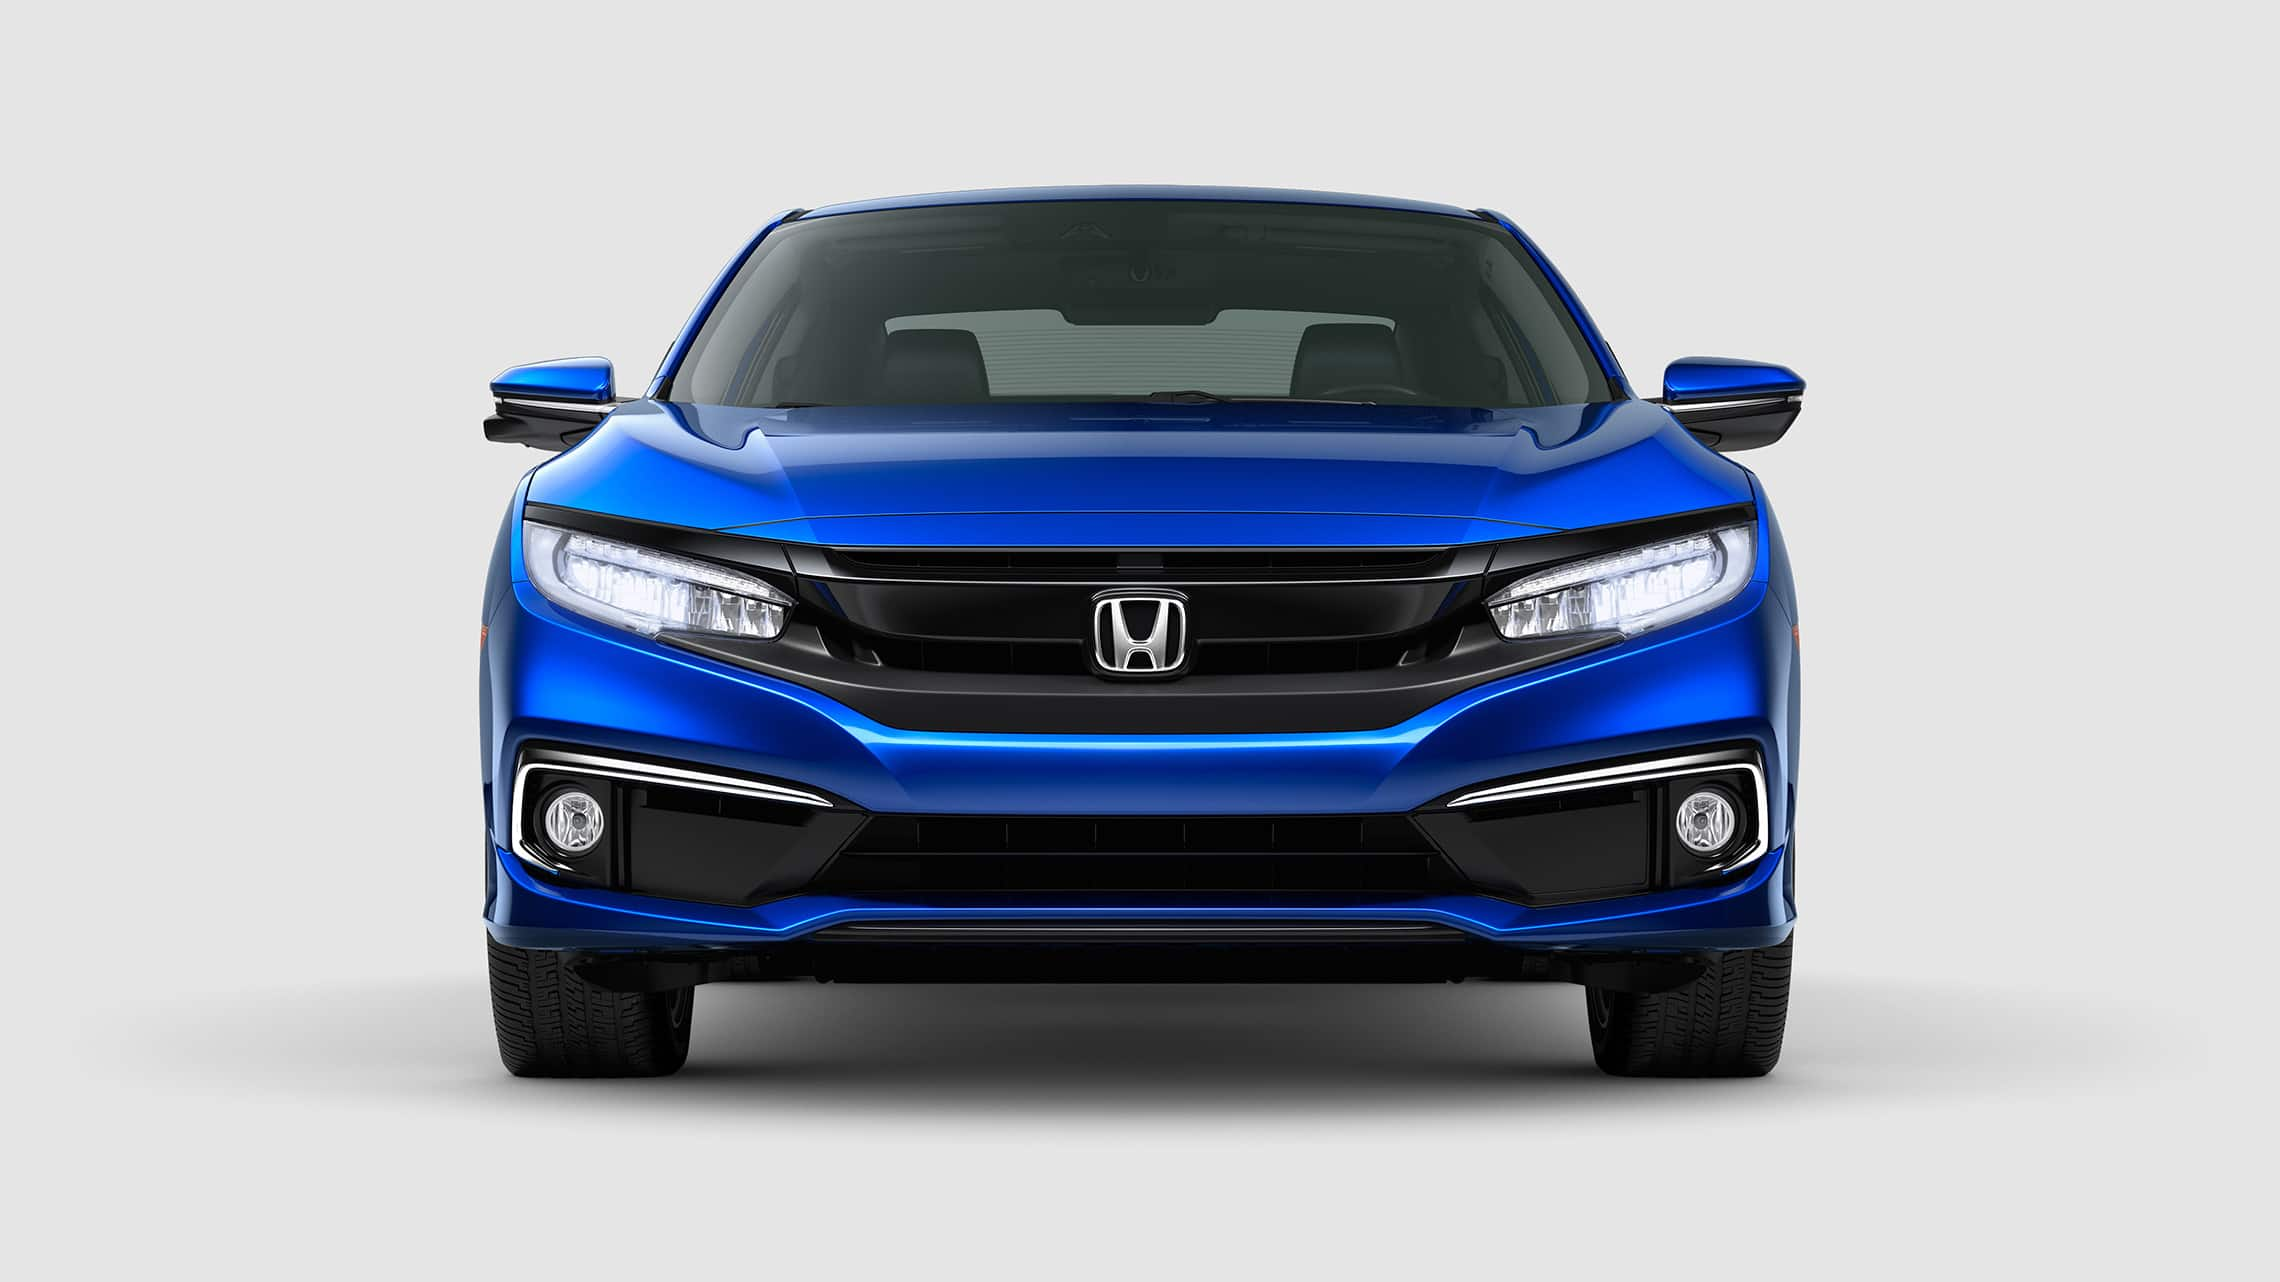 Front view of the 2020 Honda Civic Touring Coupe in Aegean Blue Metallic with LED headlights on.